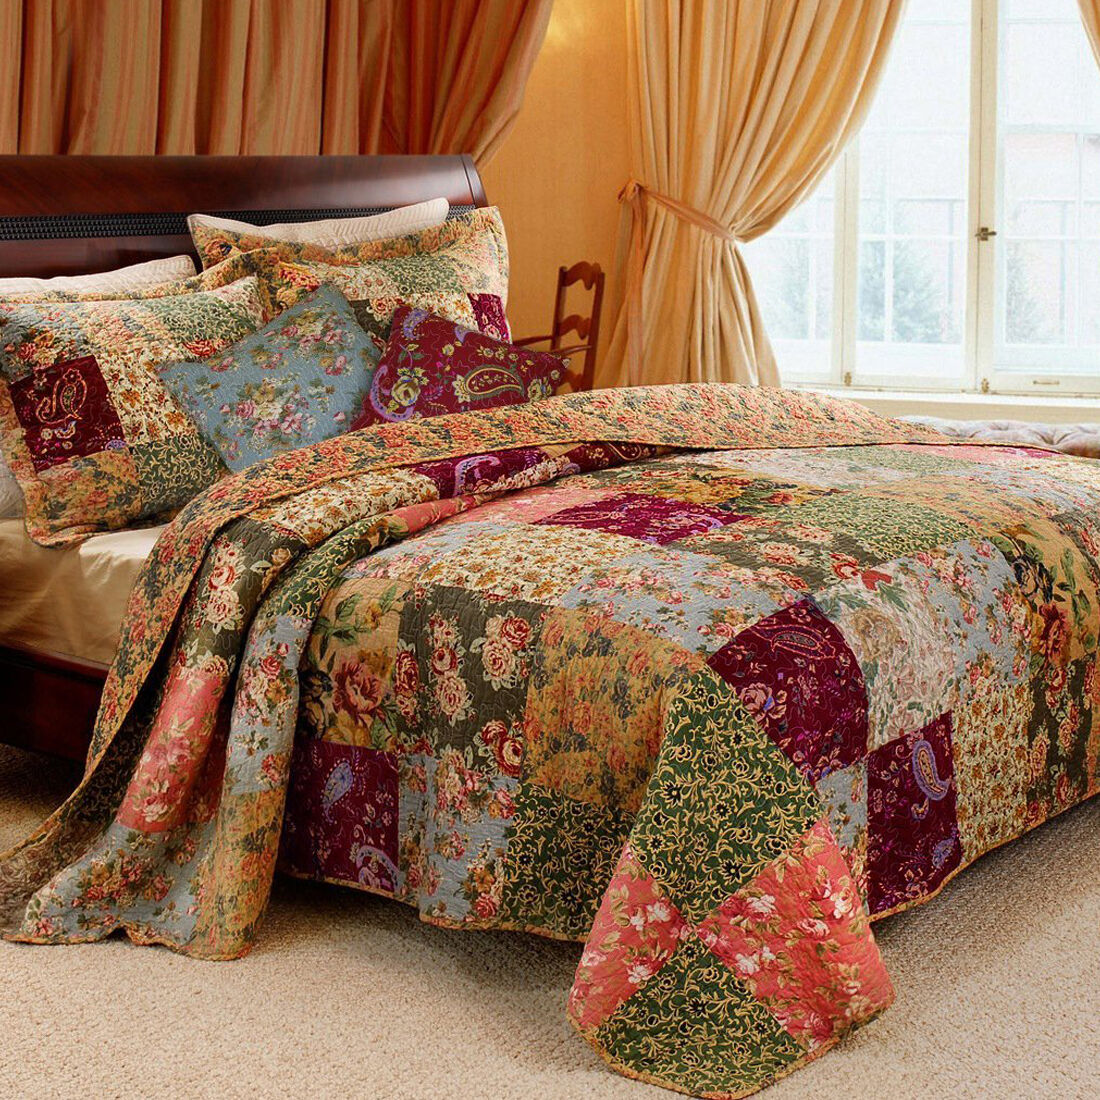 Vintage King Size Patchwork Quilt Country Style Bedding With ... : king size patchwork quilt - Adamdwight.com